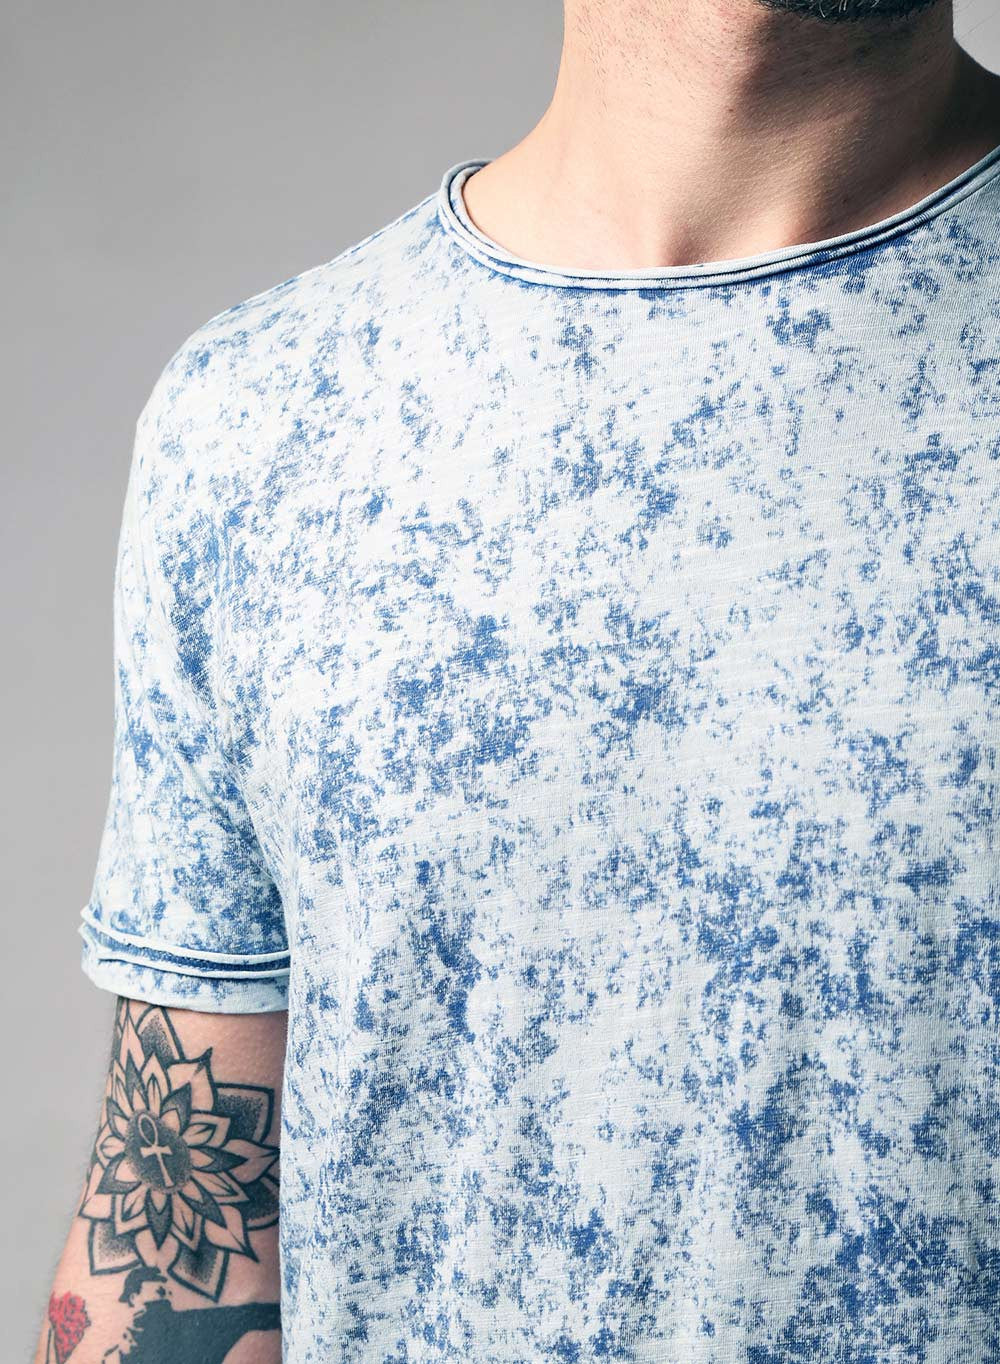 Retro Acid Wash Slim Fit T-shirt - LoveClothing.com - 5